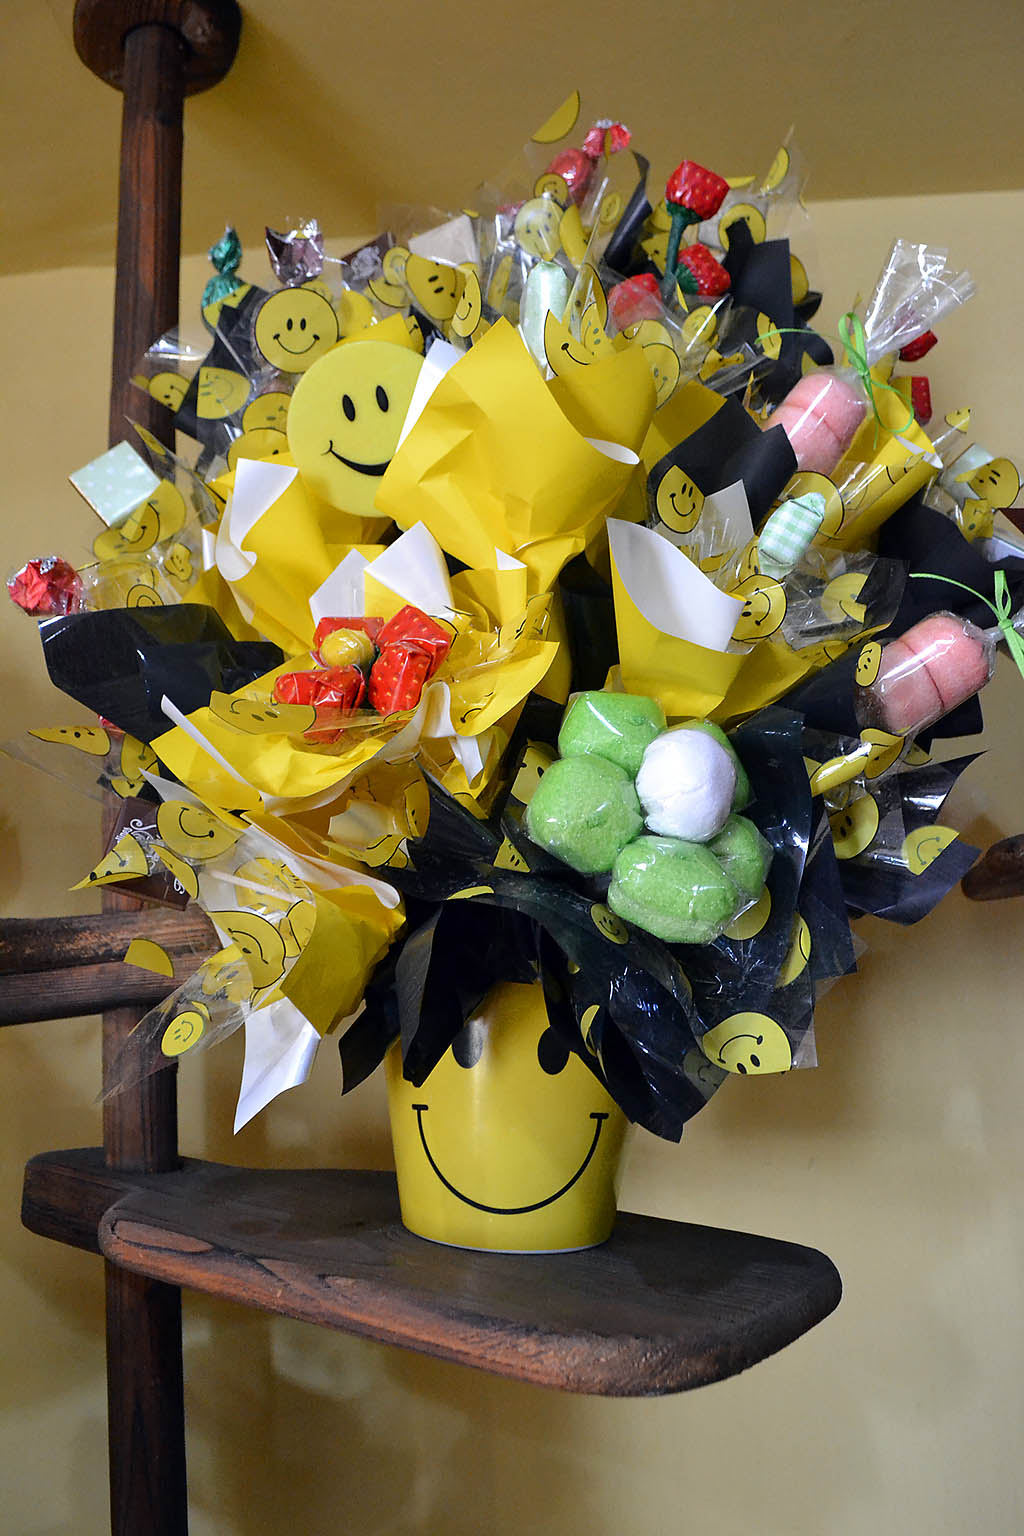 3 Easy Ways to Make a Candy Bouquet - wikiHow